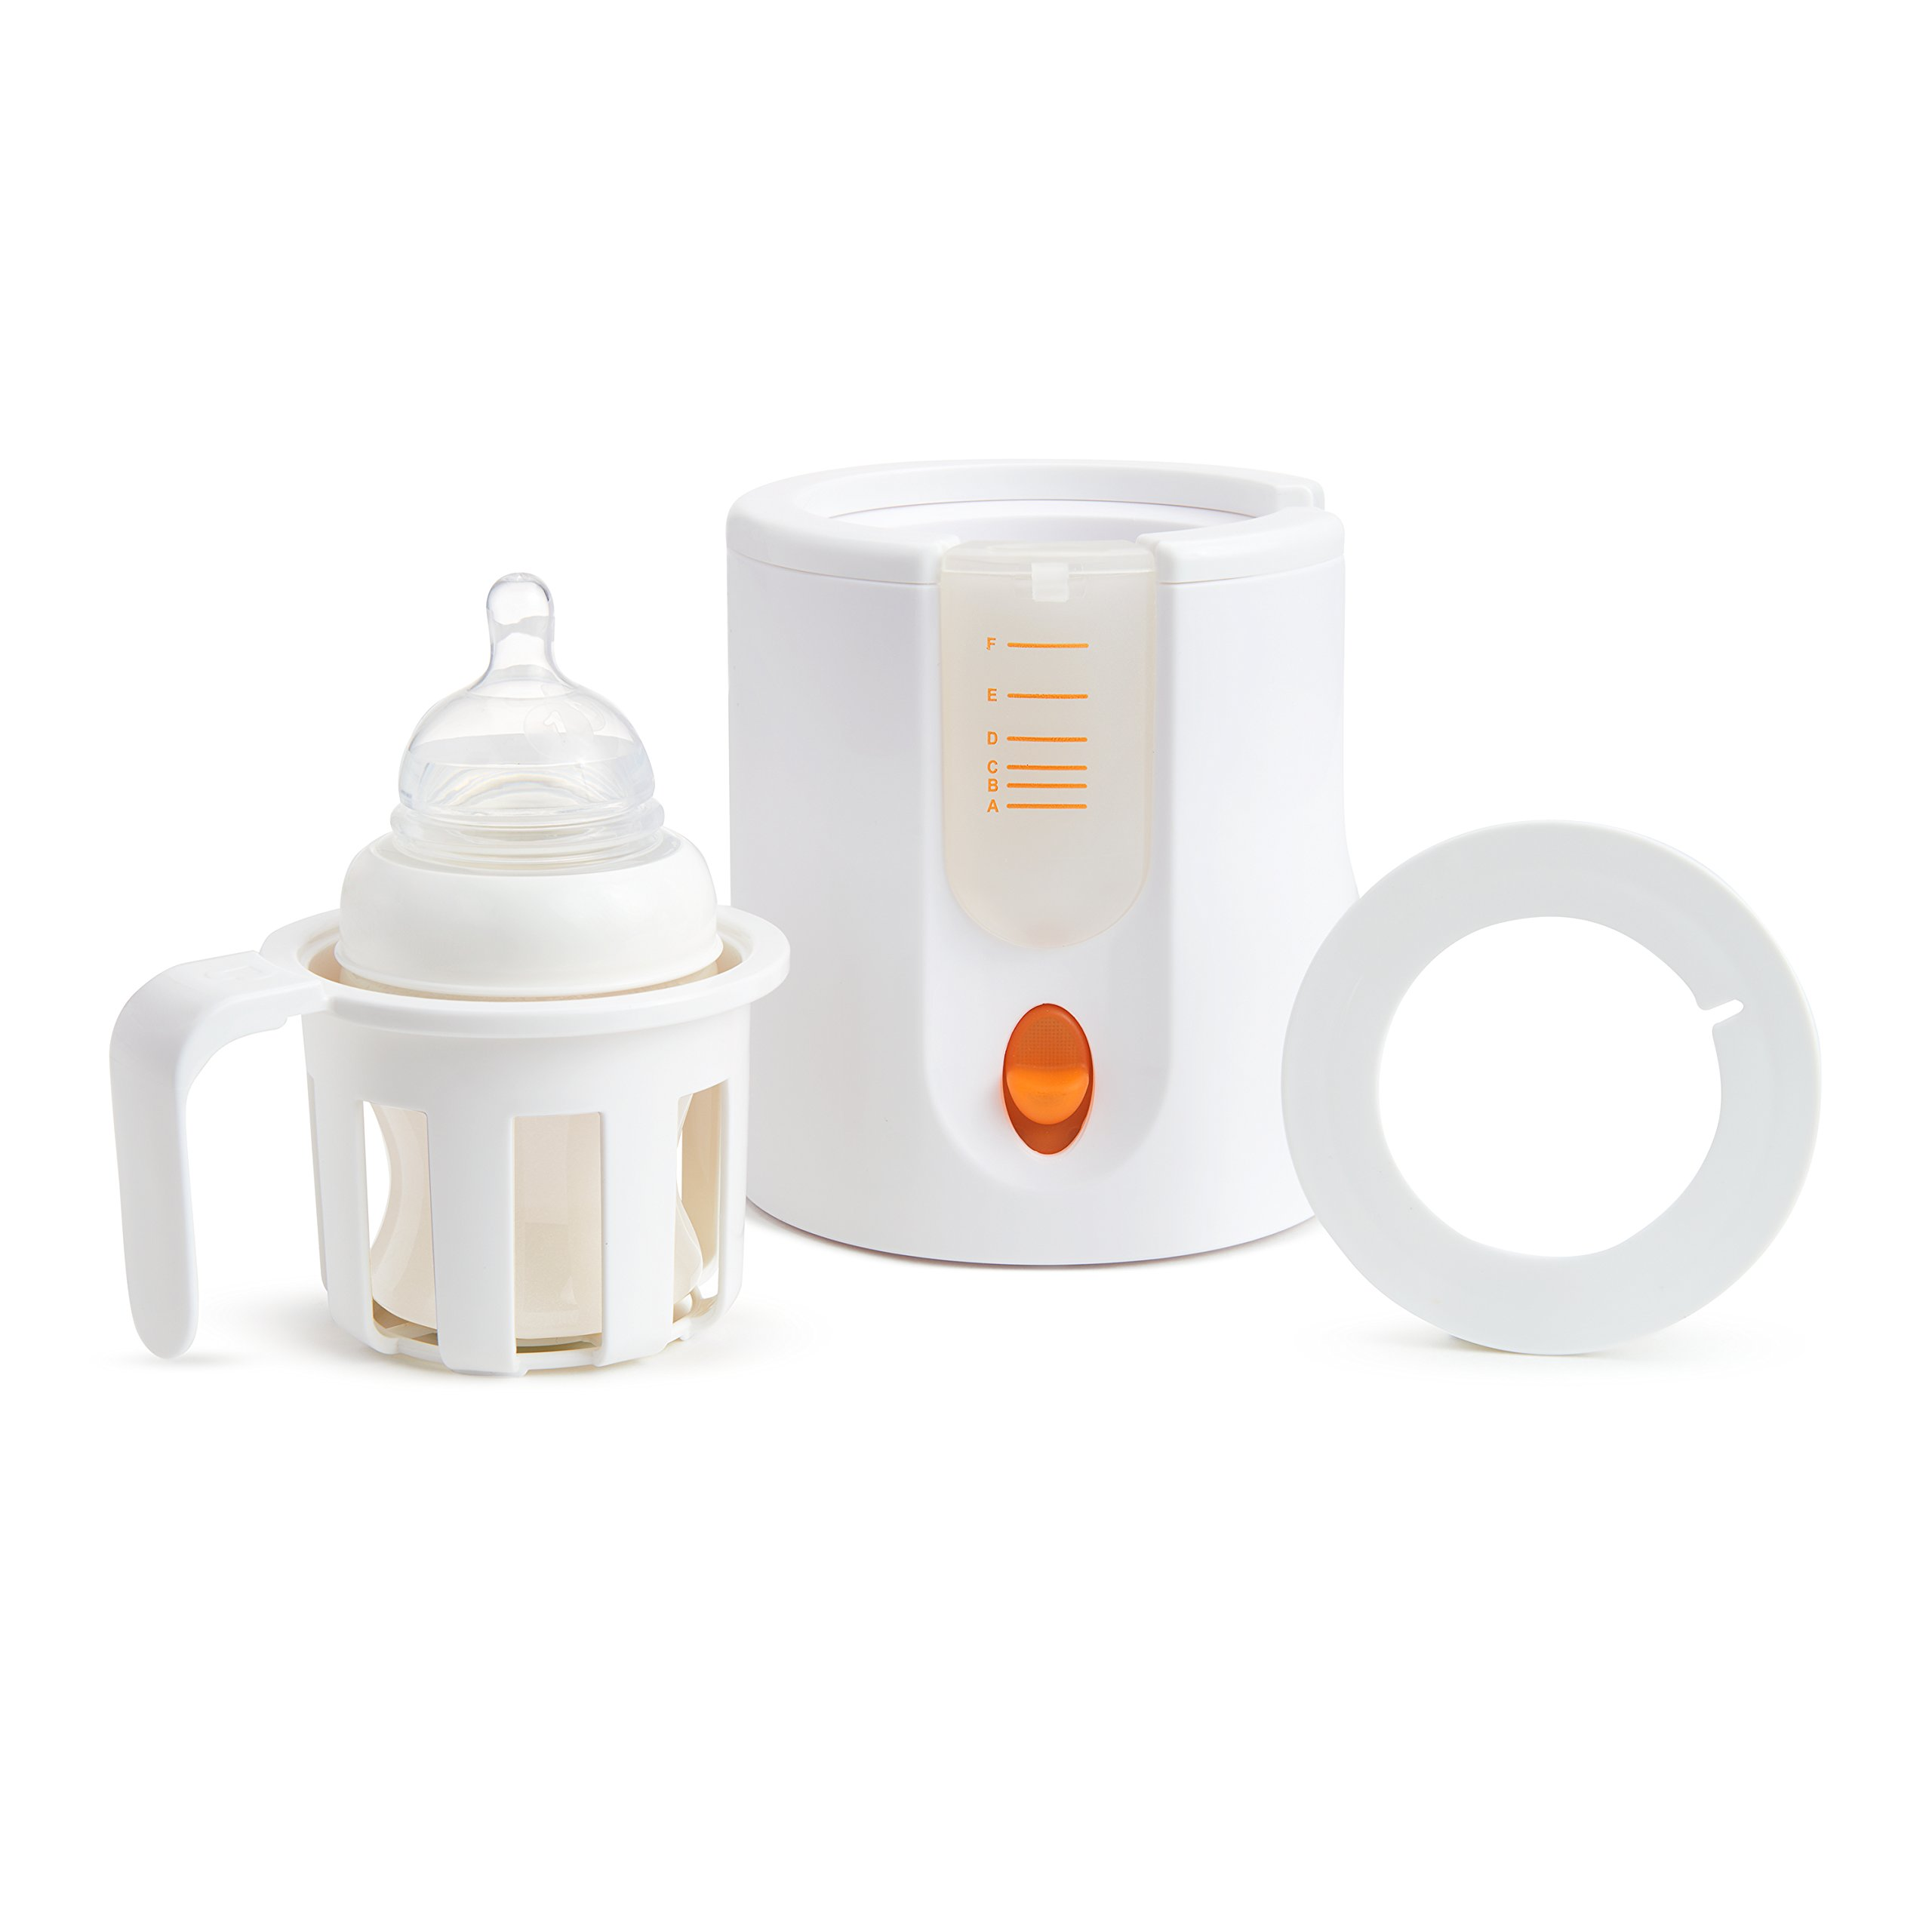 Munchkin High Speed Bottle Warmer, Orange/White, 1 Count by Munchkin